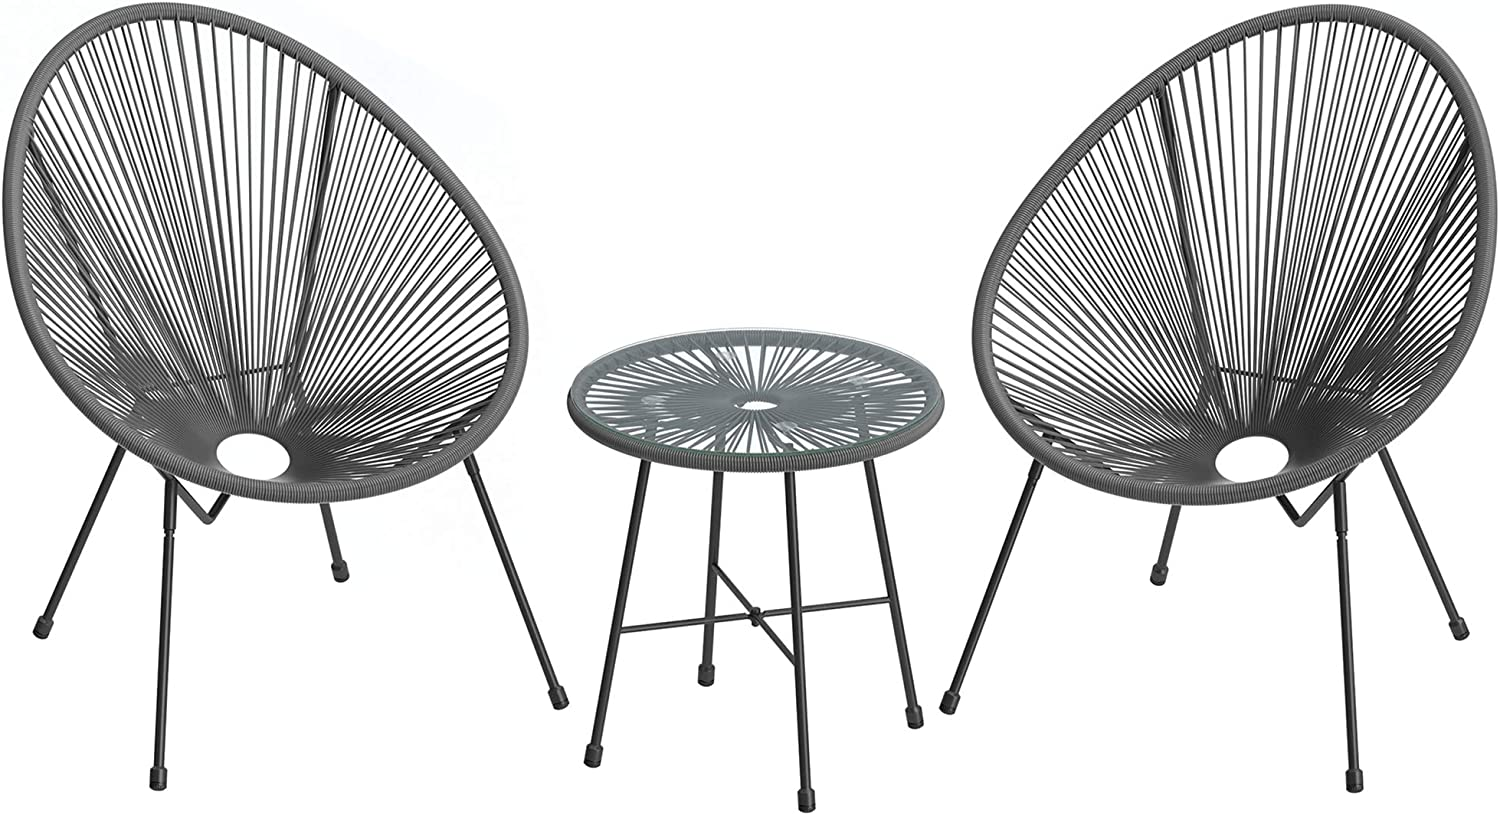 SONGMICS 3-Piece Outdoor Recommendation Seating Max 52% OFF Acapulco Chair Fu Patio Modern